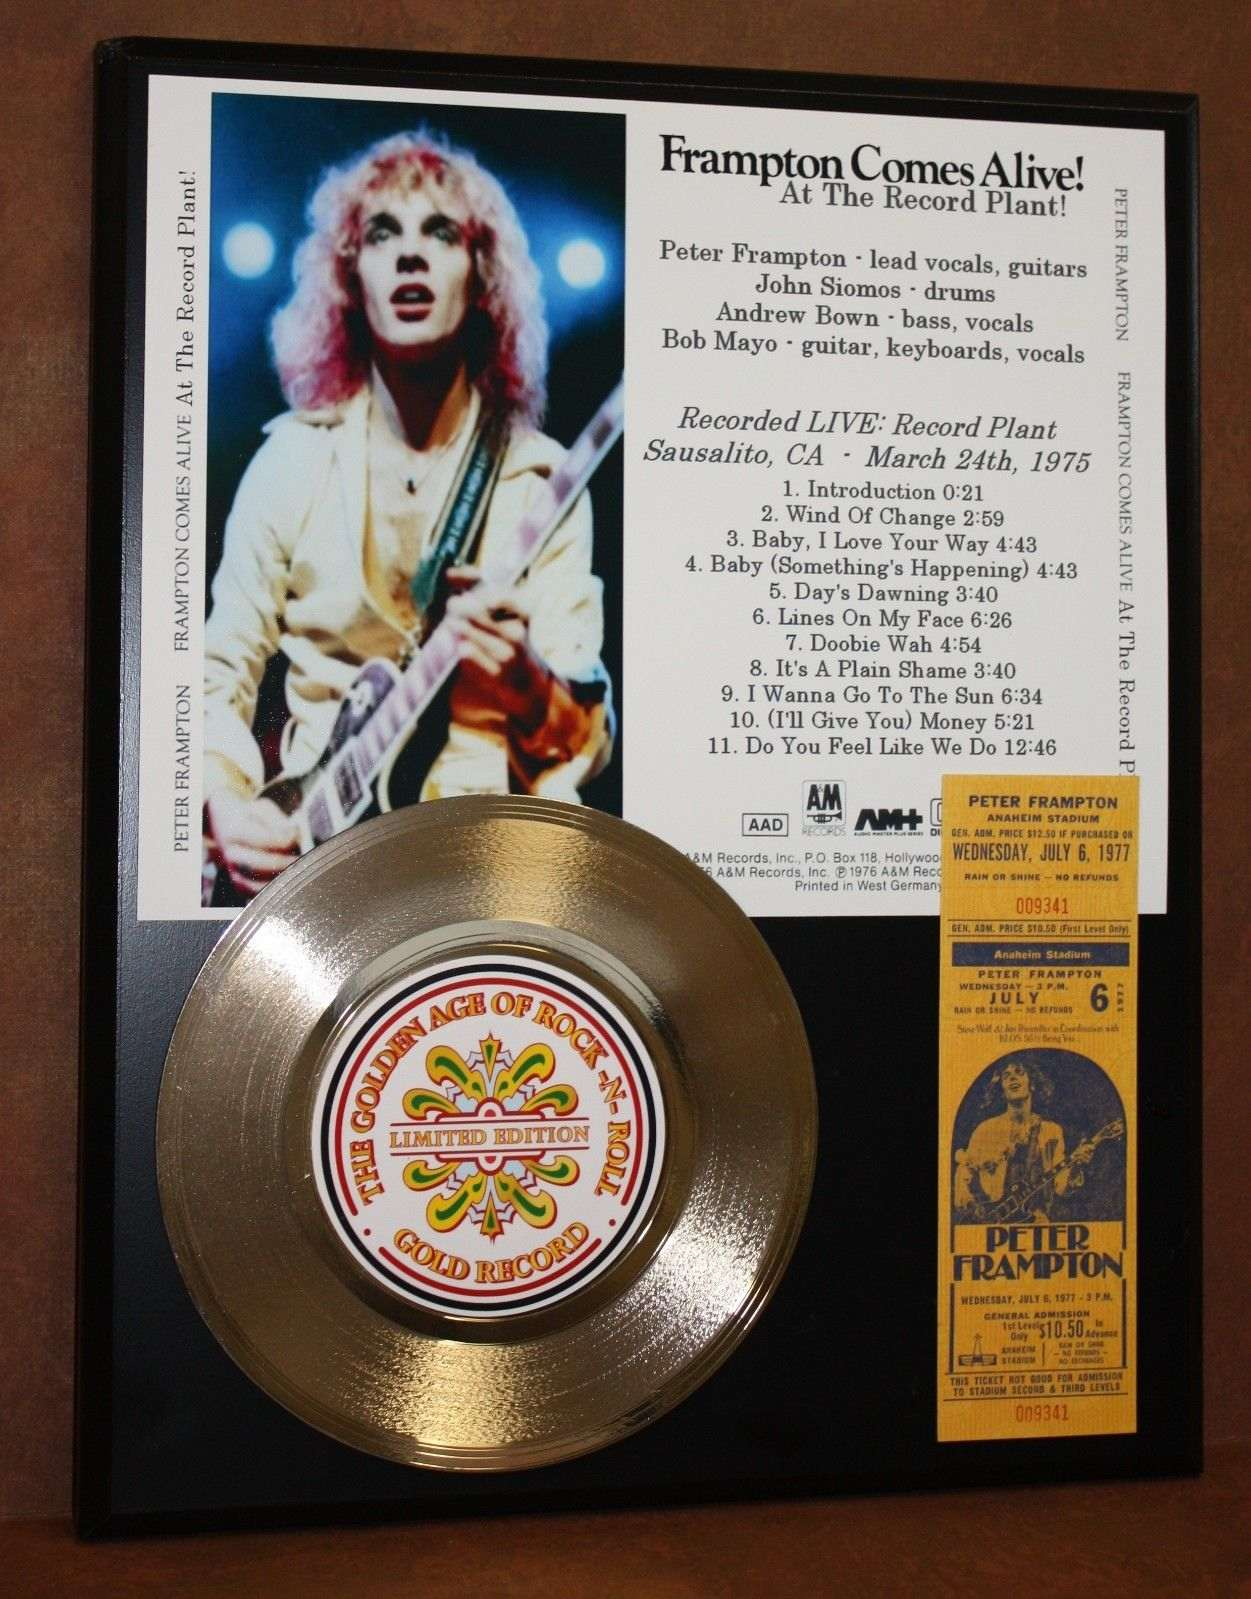 Peter Frampton Concert Ticket Series Record Limited